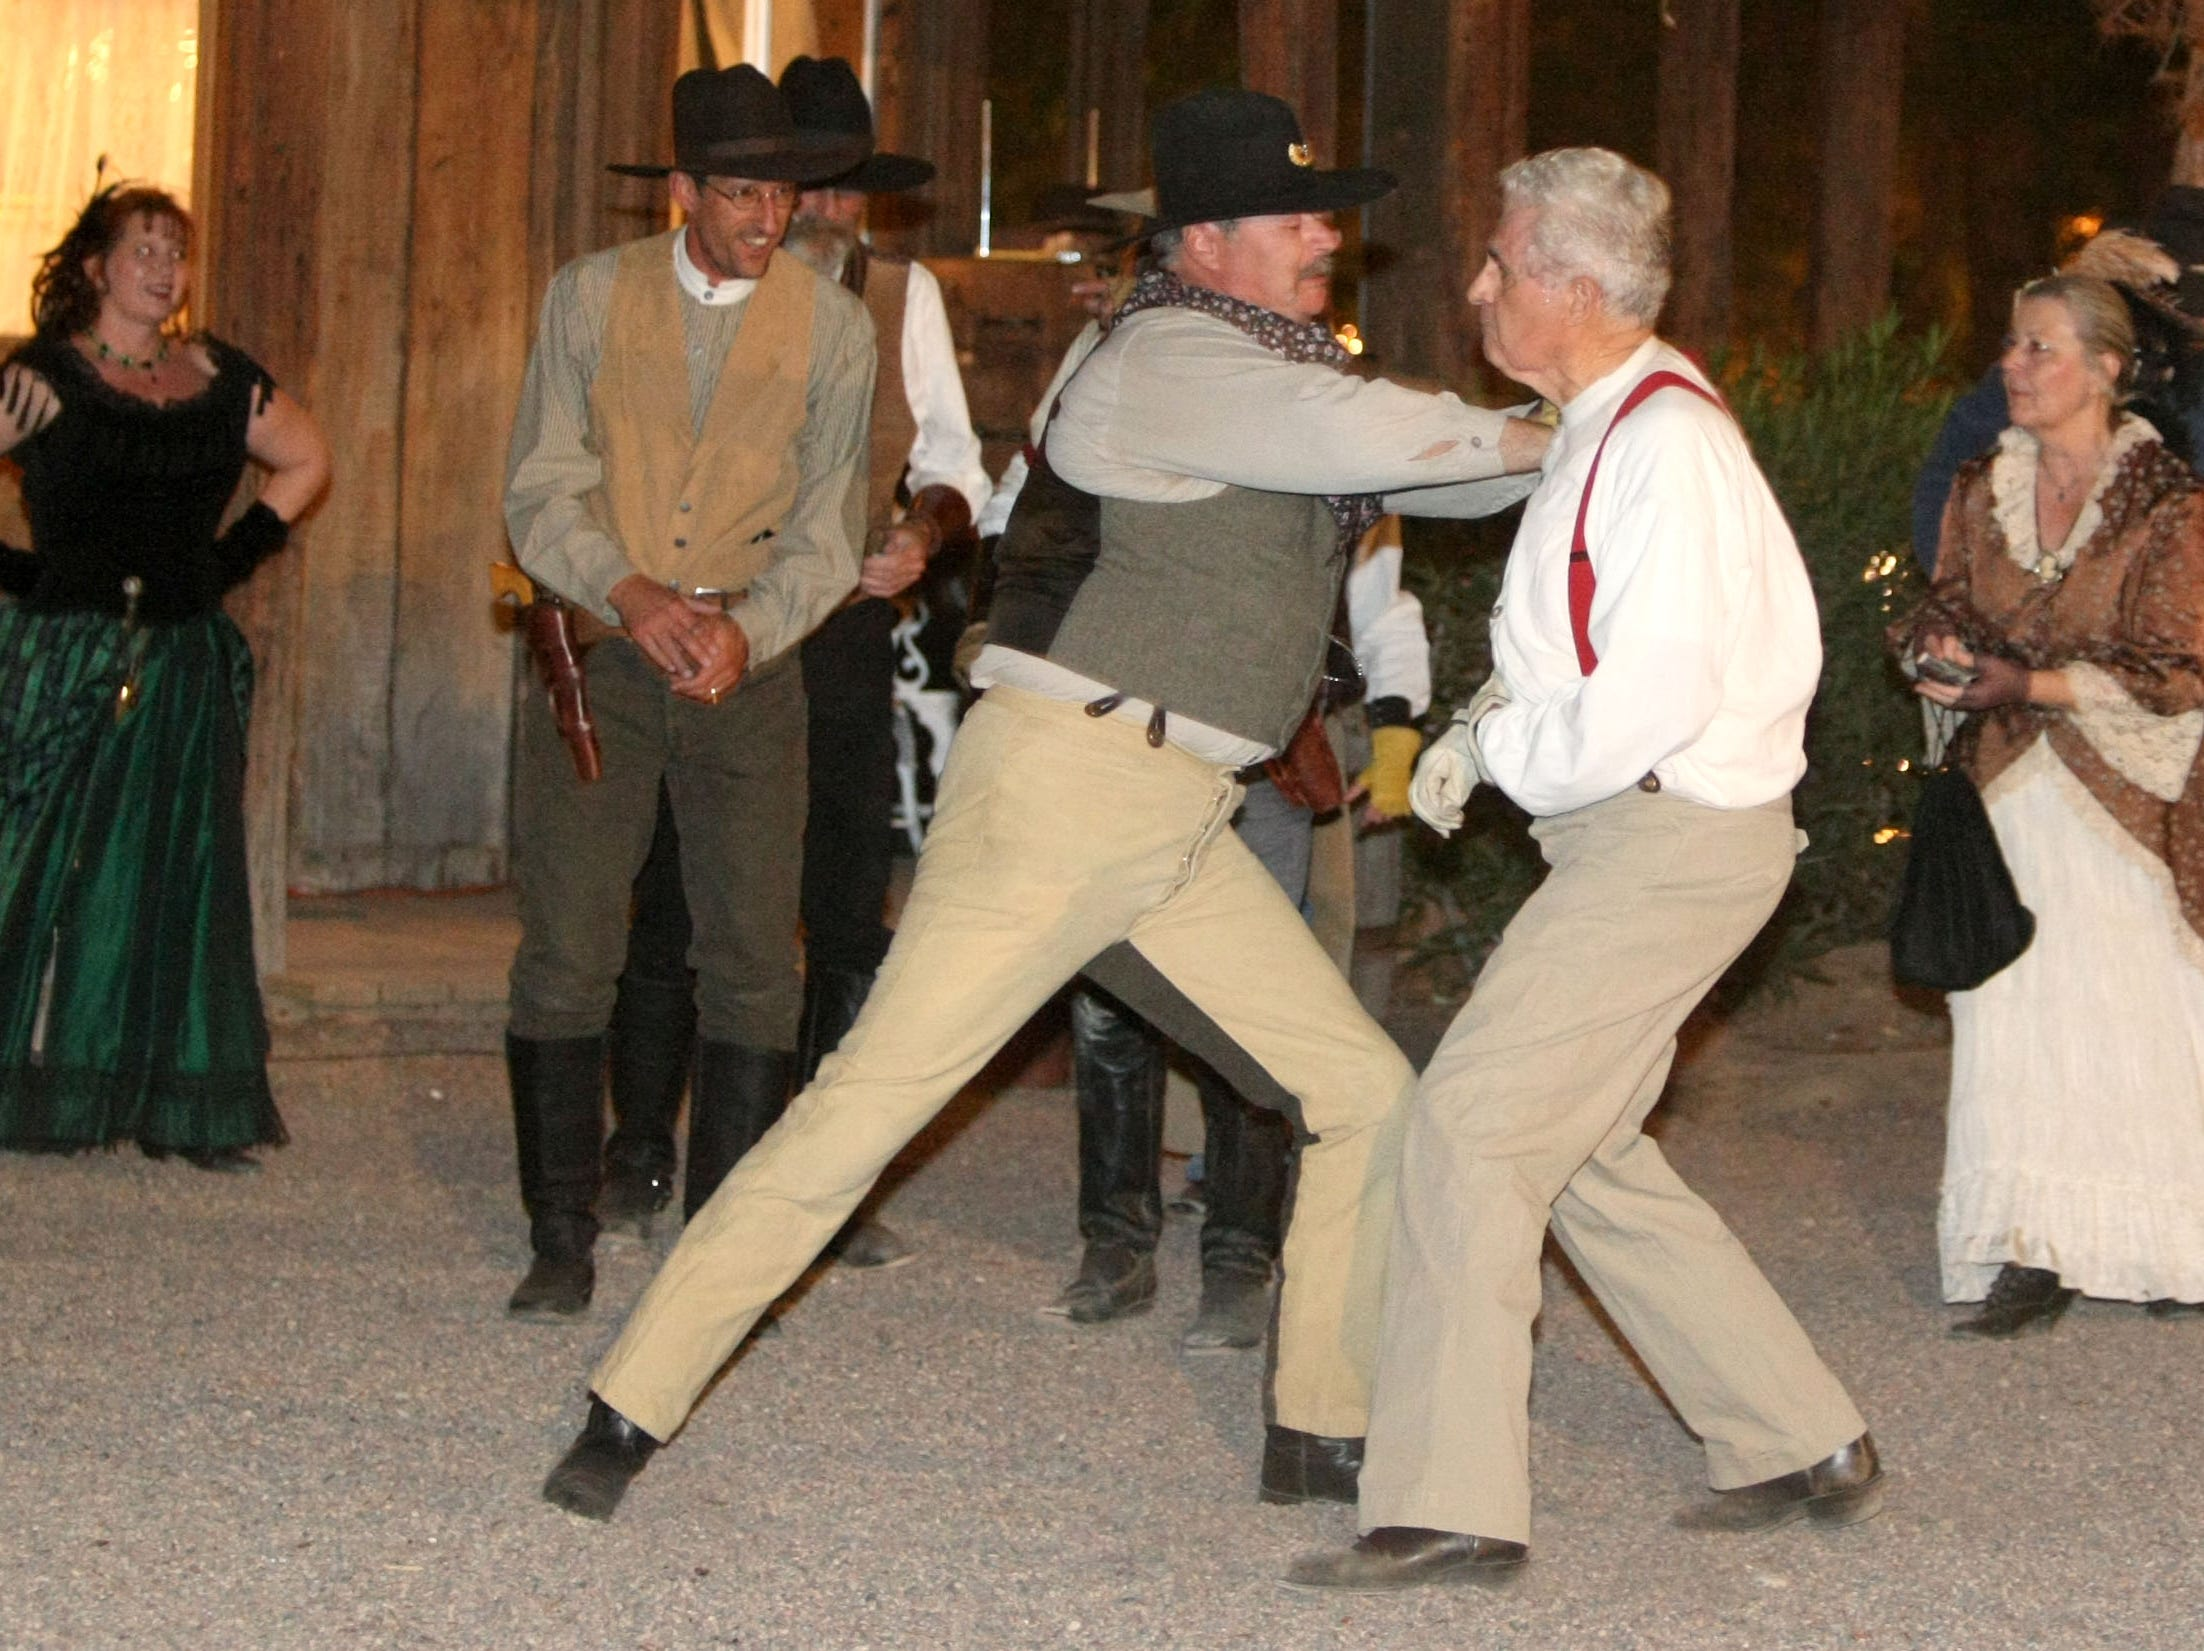 In earlier days, Bob Charnes (right) was involved in plenty of stunts. In 2009, he squares off with fellow Arizona Gunfighter Dan Blake at the Rockin R Ranch.